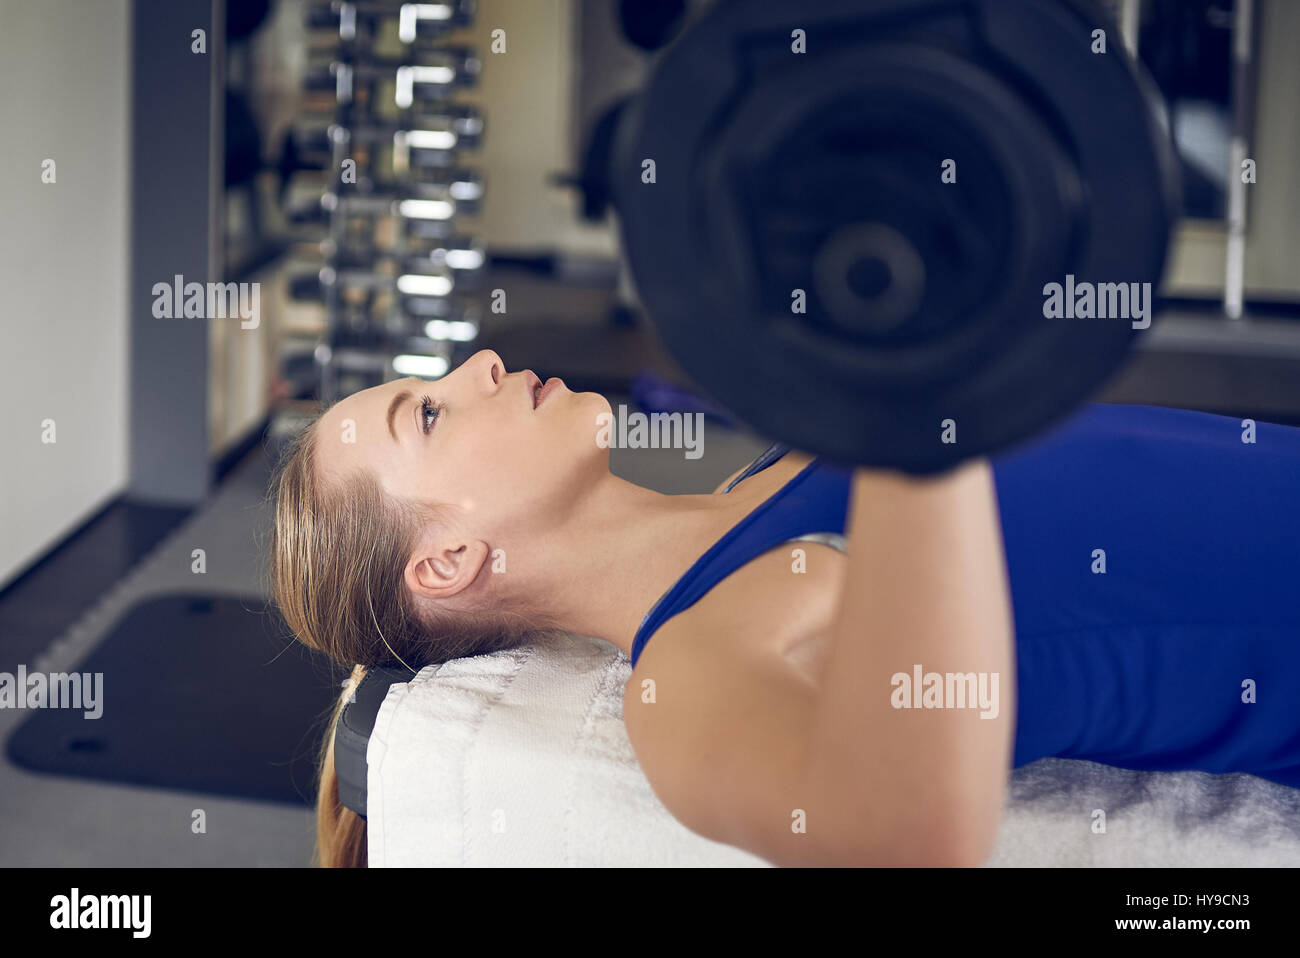 Close-up side view of young blonde woman in blue top doing bench pressing exercise with bar-bell in gym - Stock Image